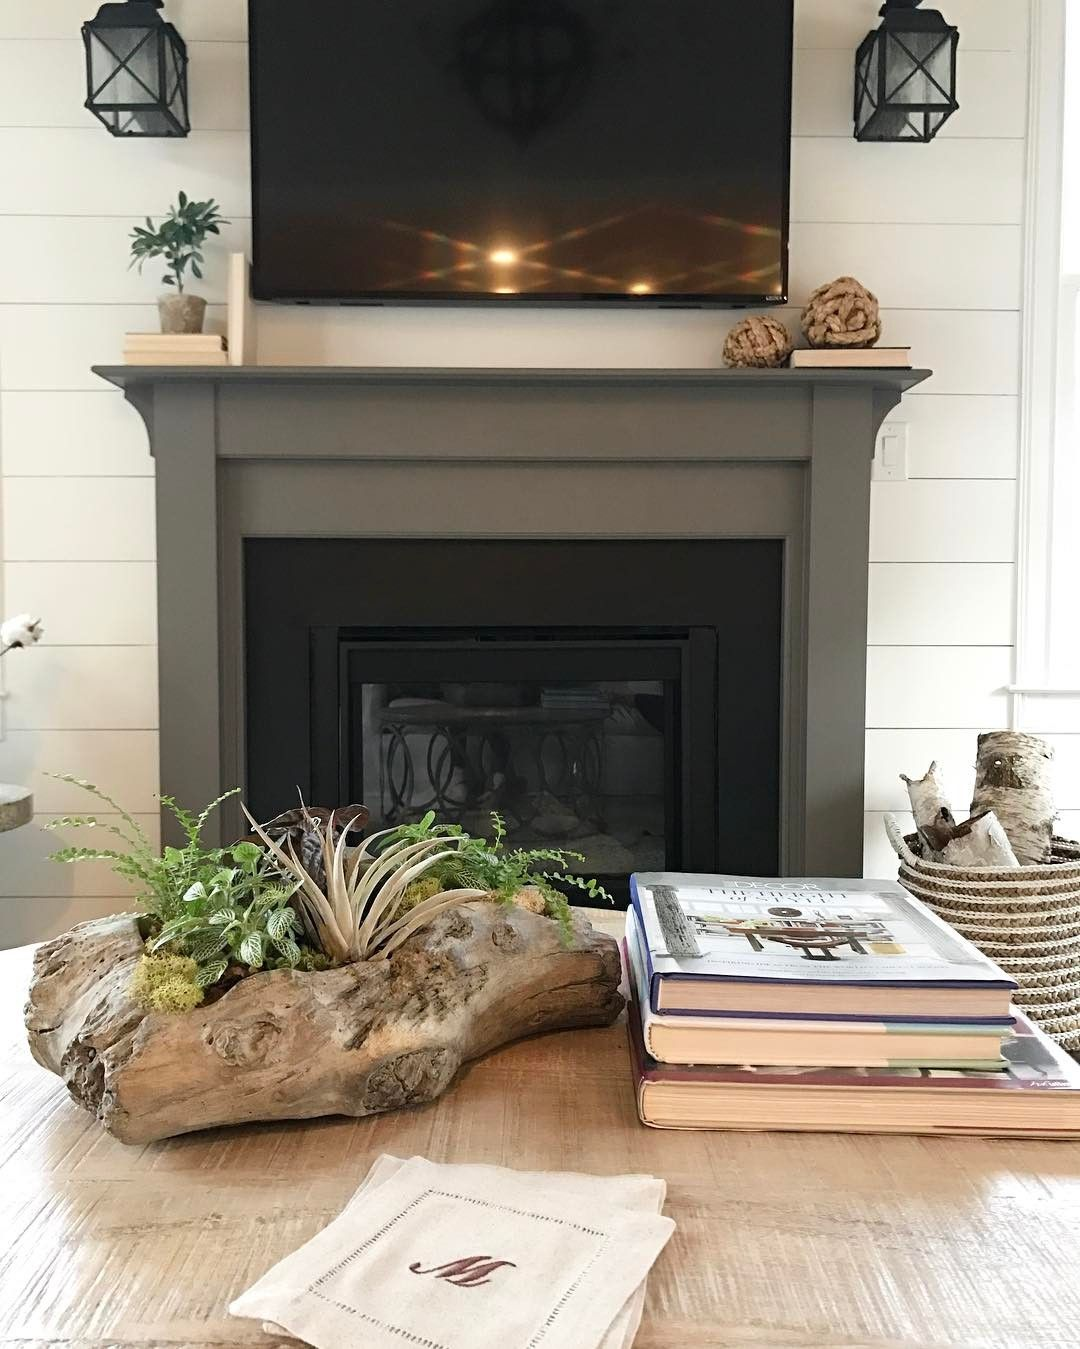 Wunderbar The Fireplace Surround Is Painted In Sherwin Williams Gauntlet Gray.